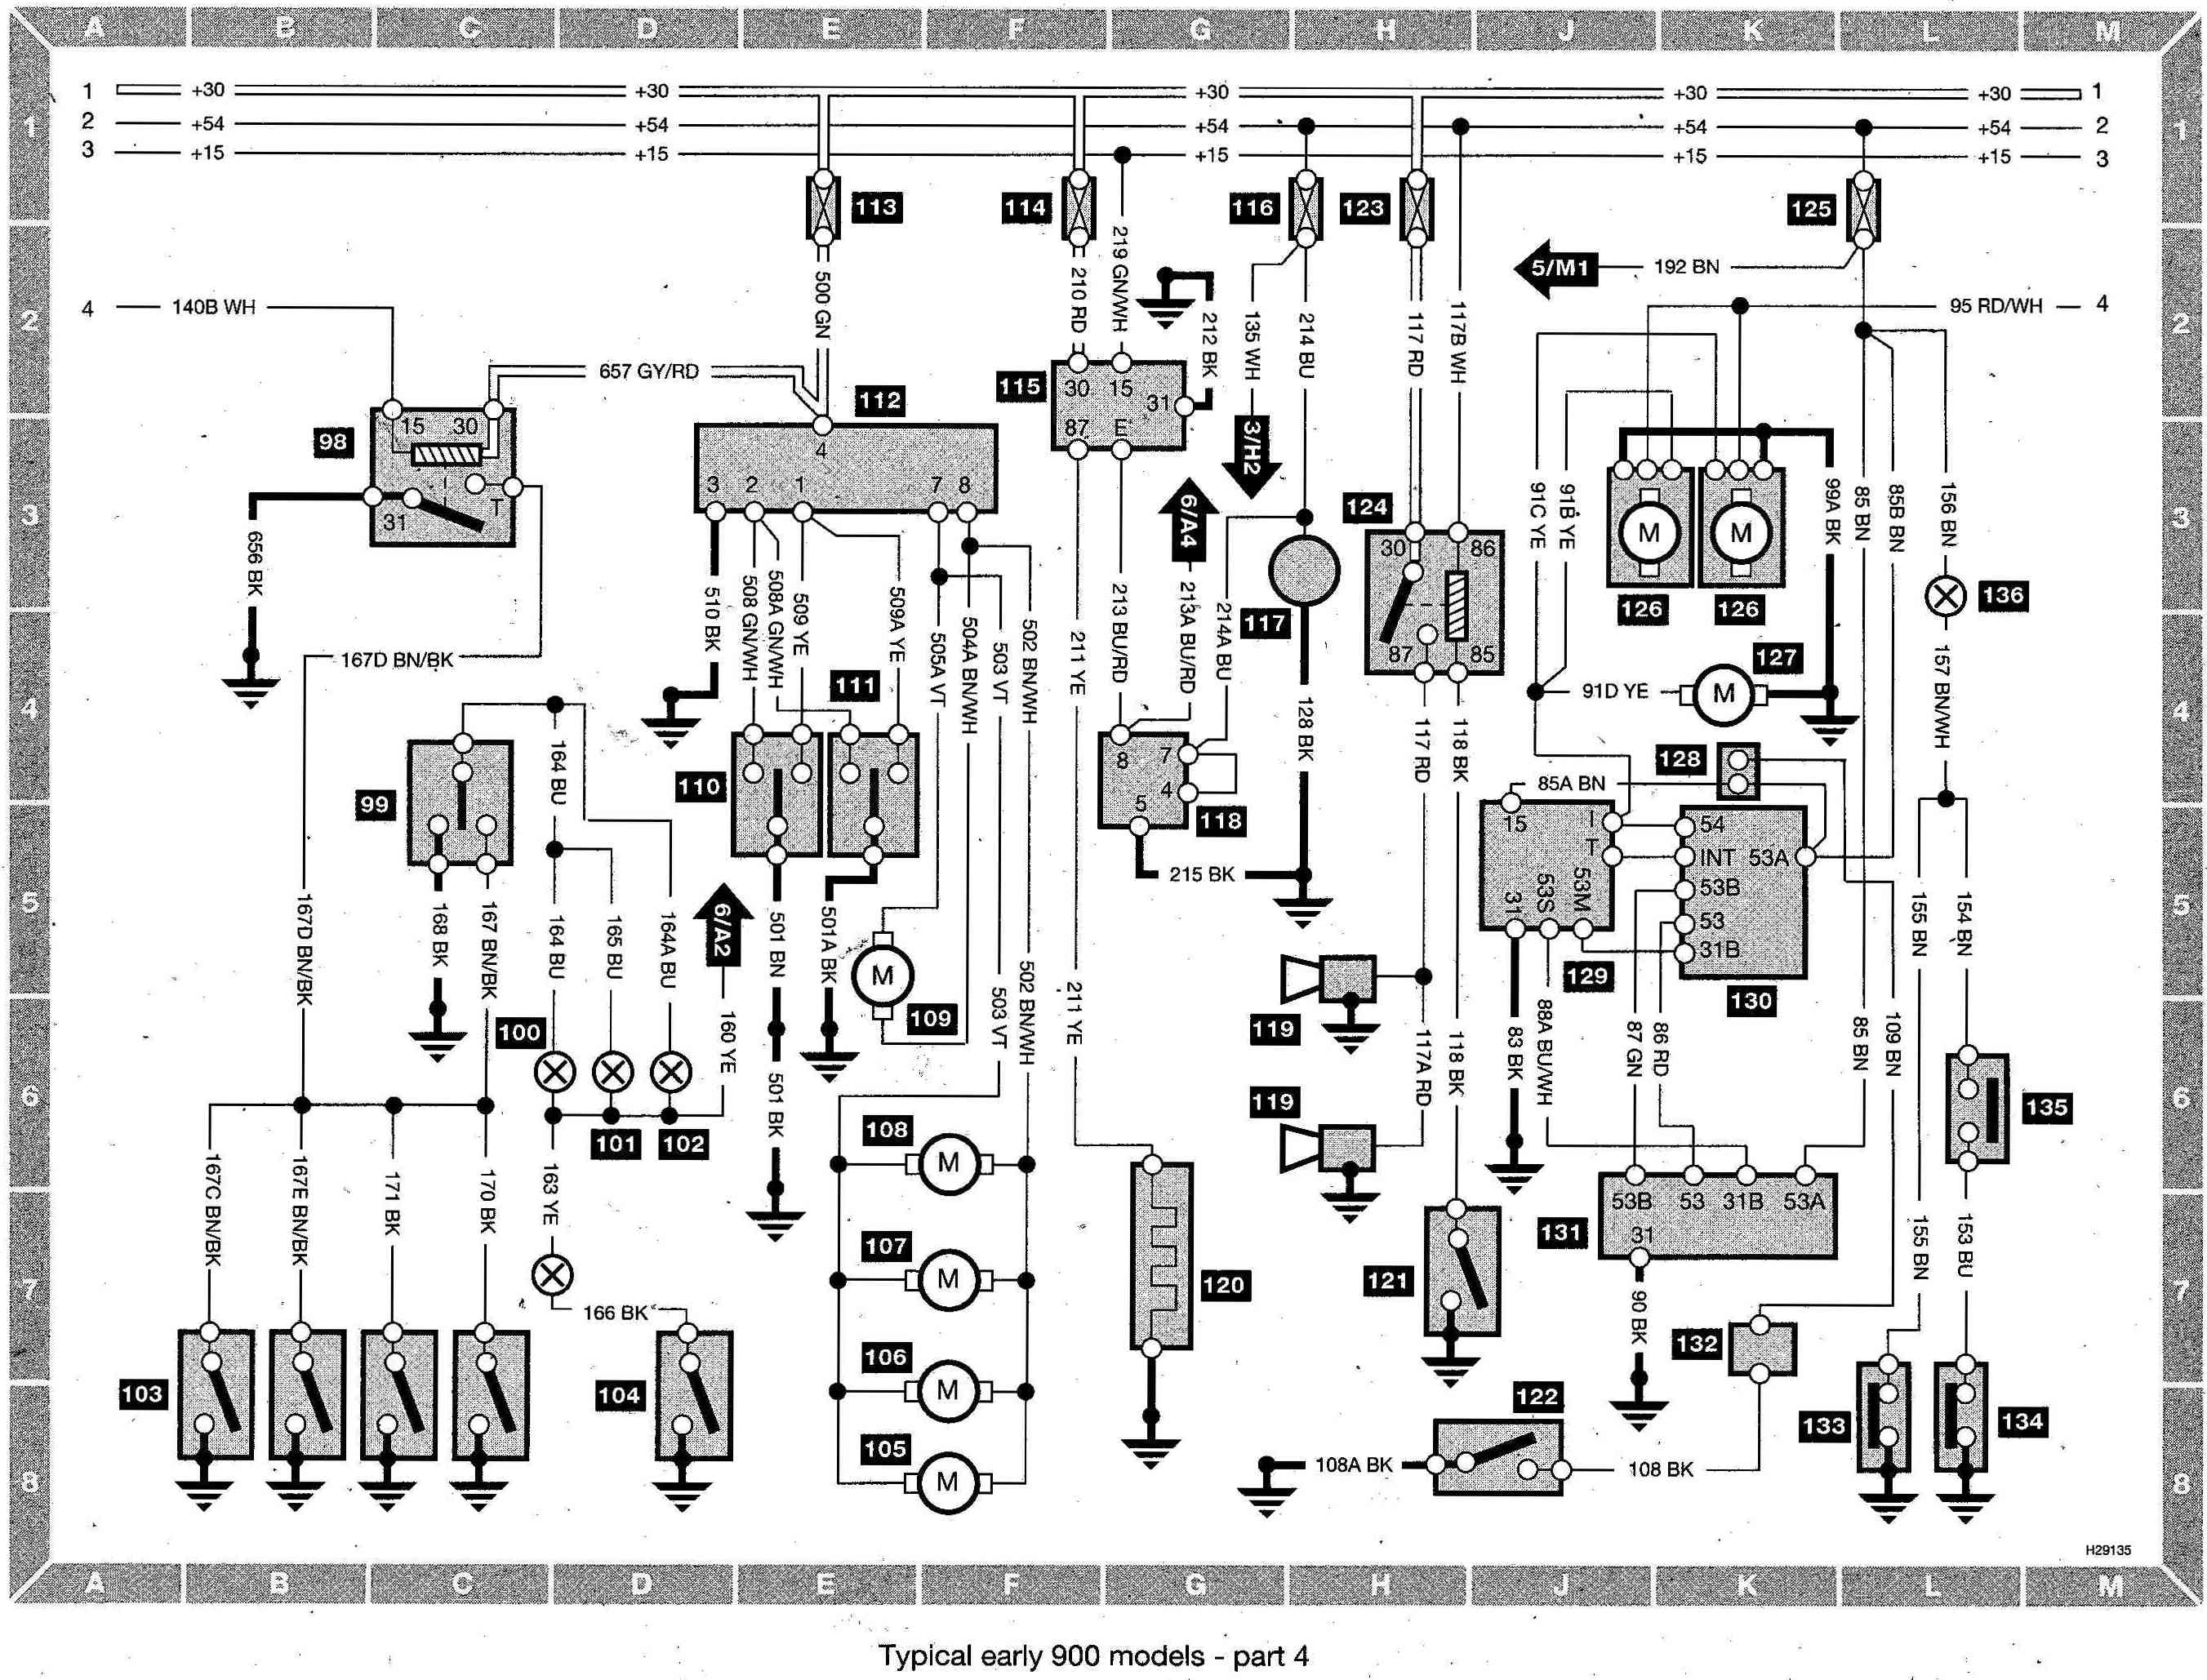 Index Of   Saab  Saab 900 Wiring Diagram  Early Models